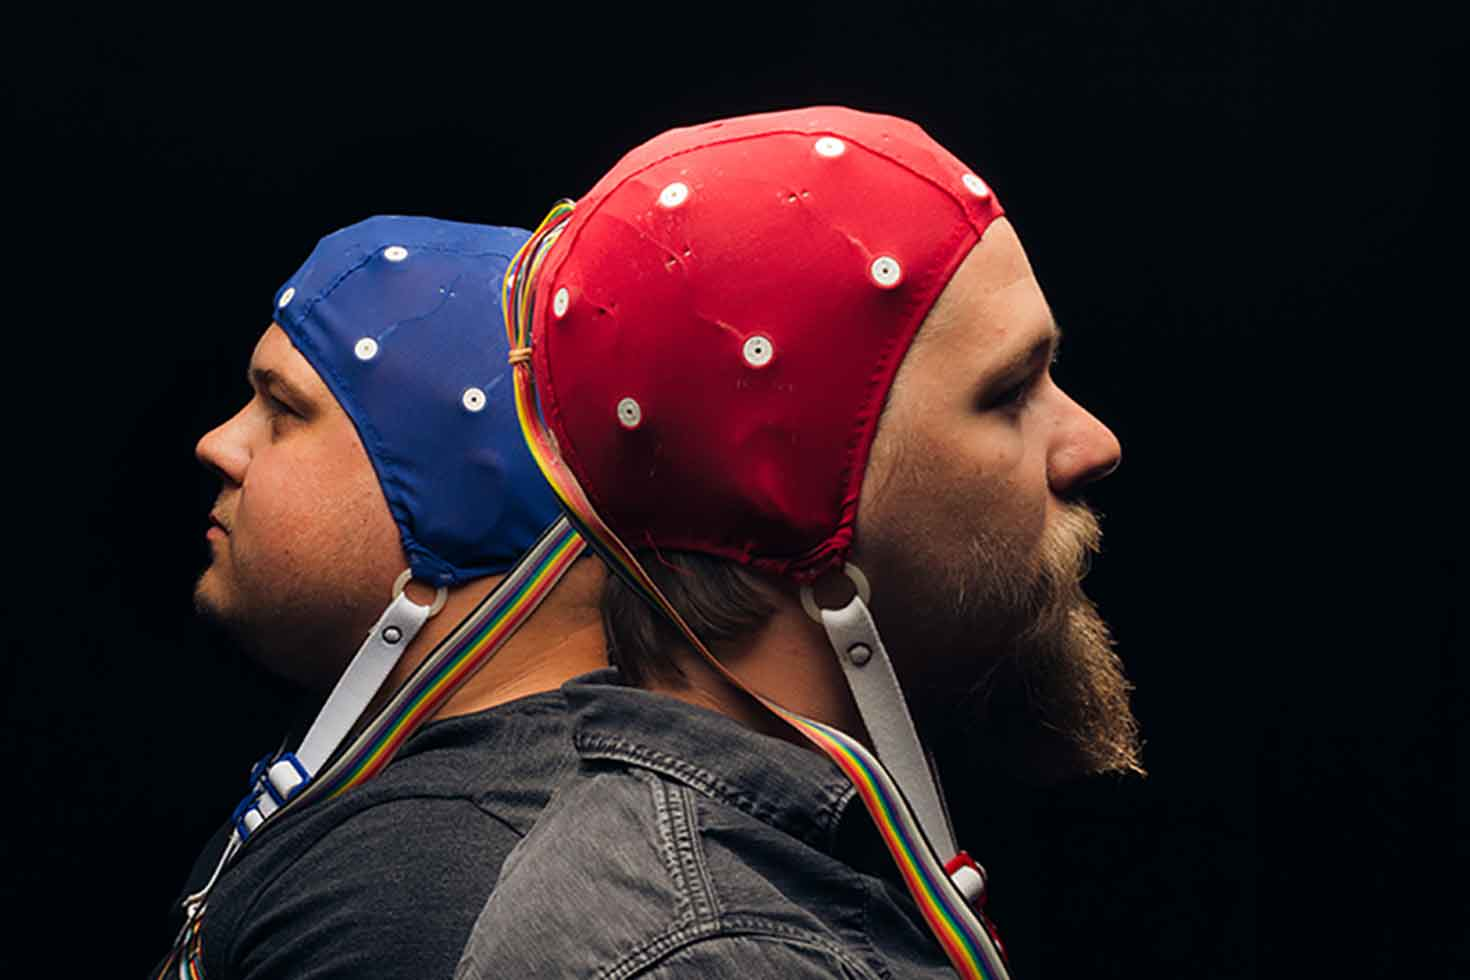 DXArts Project featuring two men wearing EEG caps to monitor neural oscillations